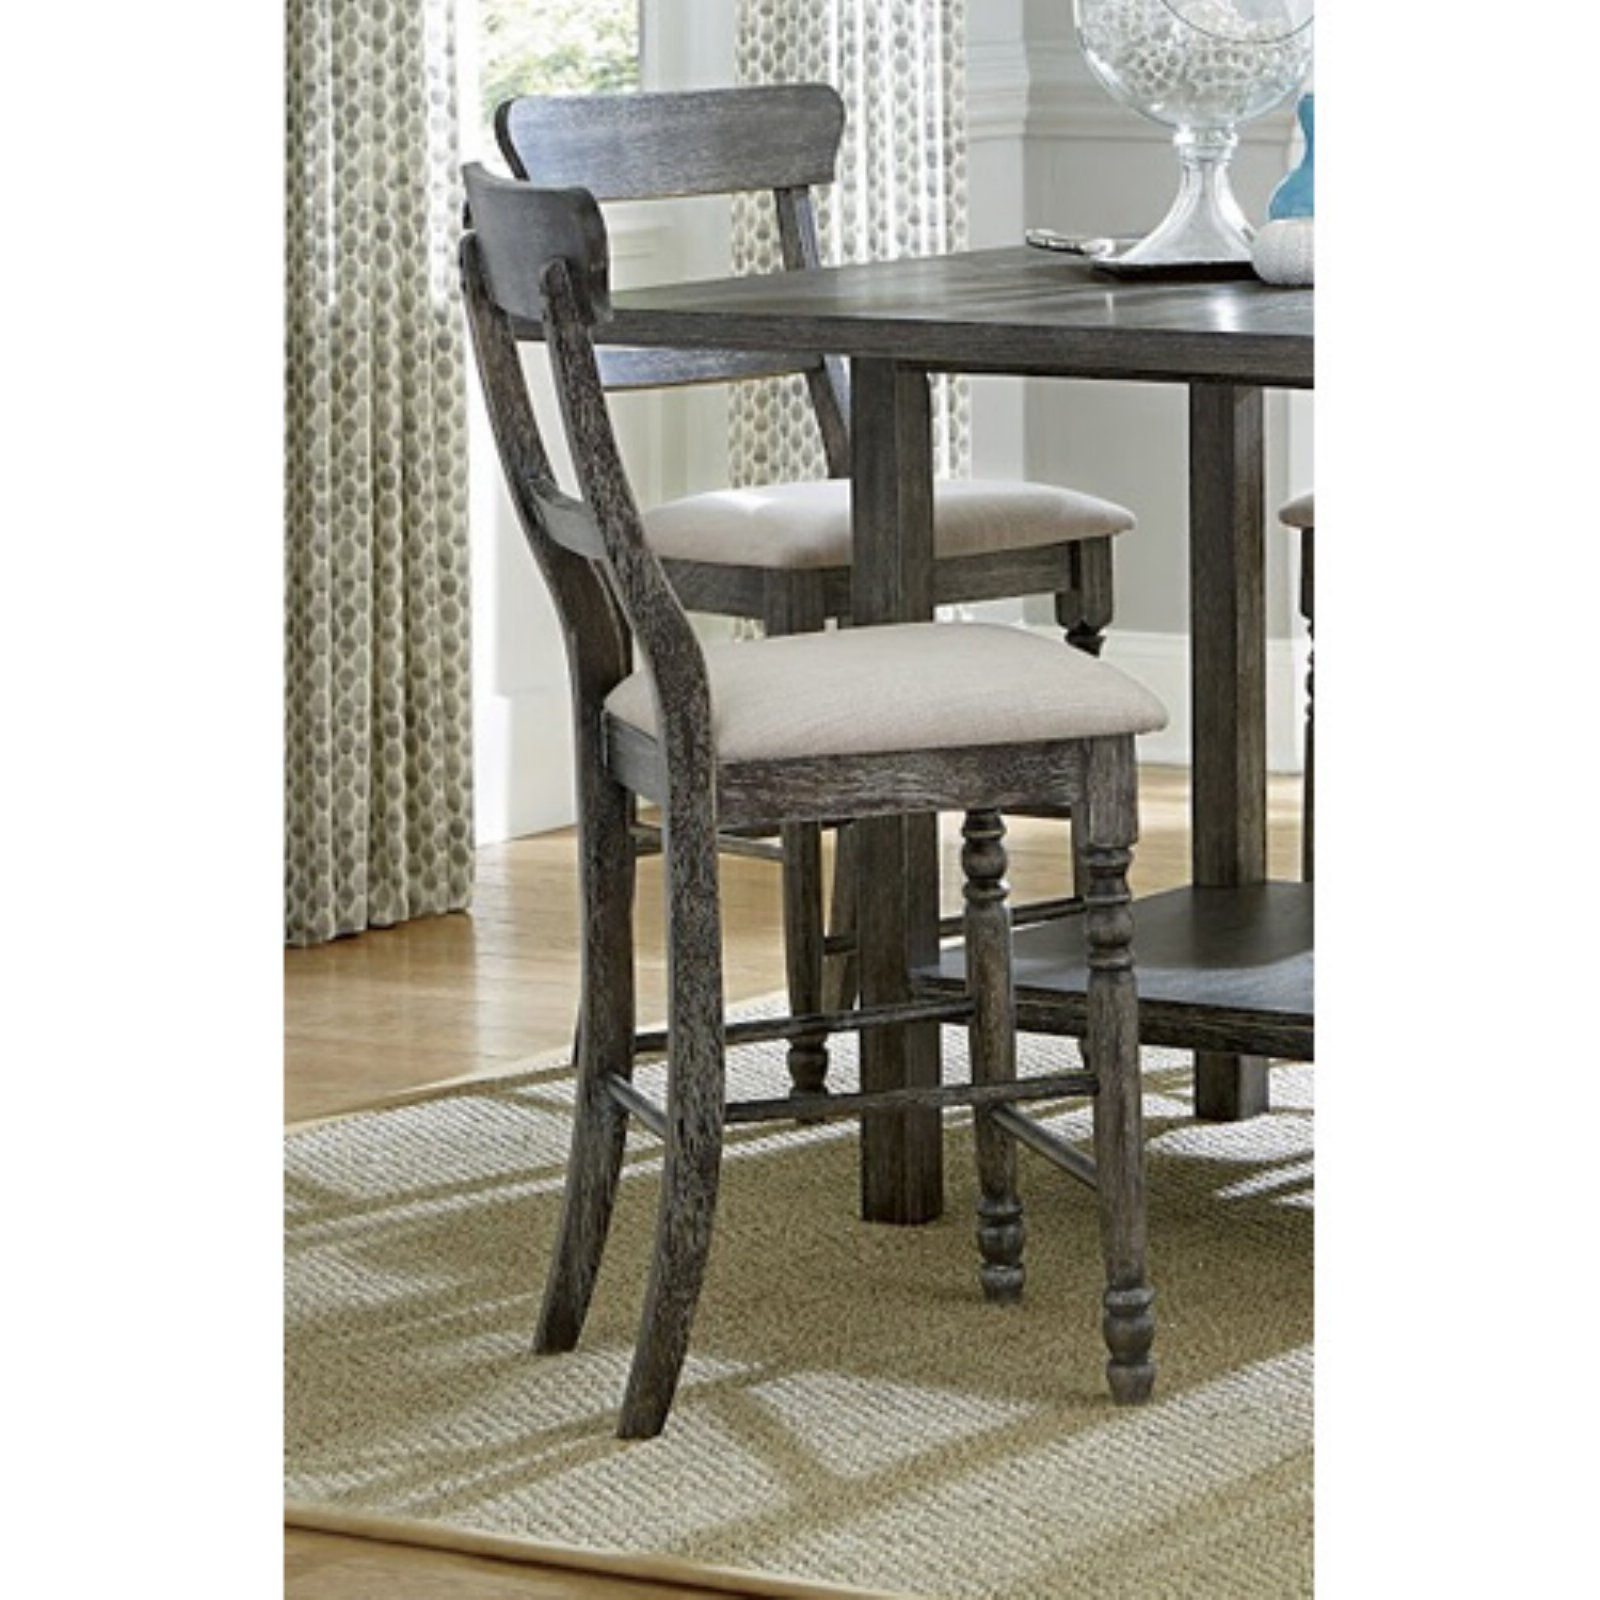 Progressive Furniture Muses Ladder Back Counter Height Dining Chair - Set of 2